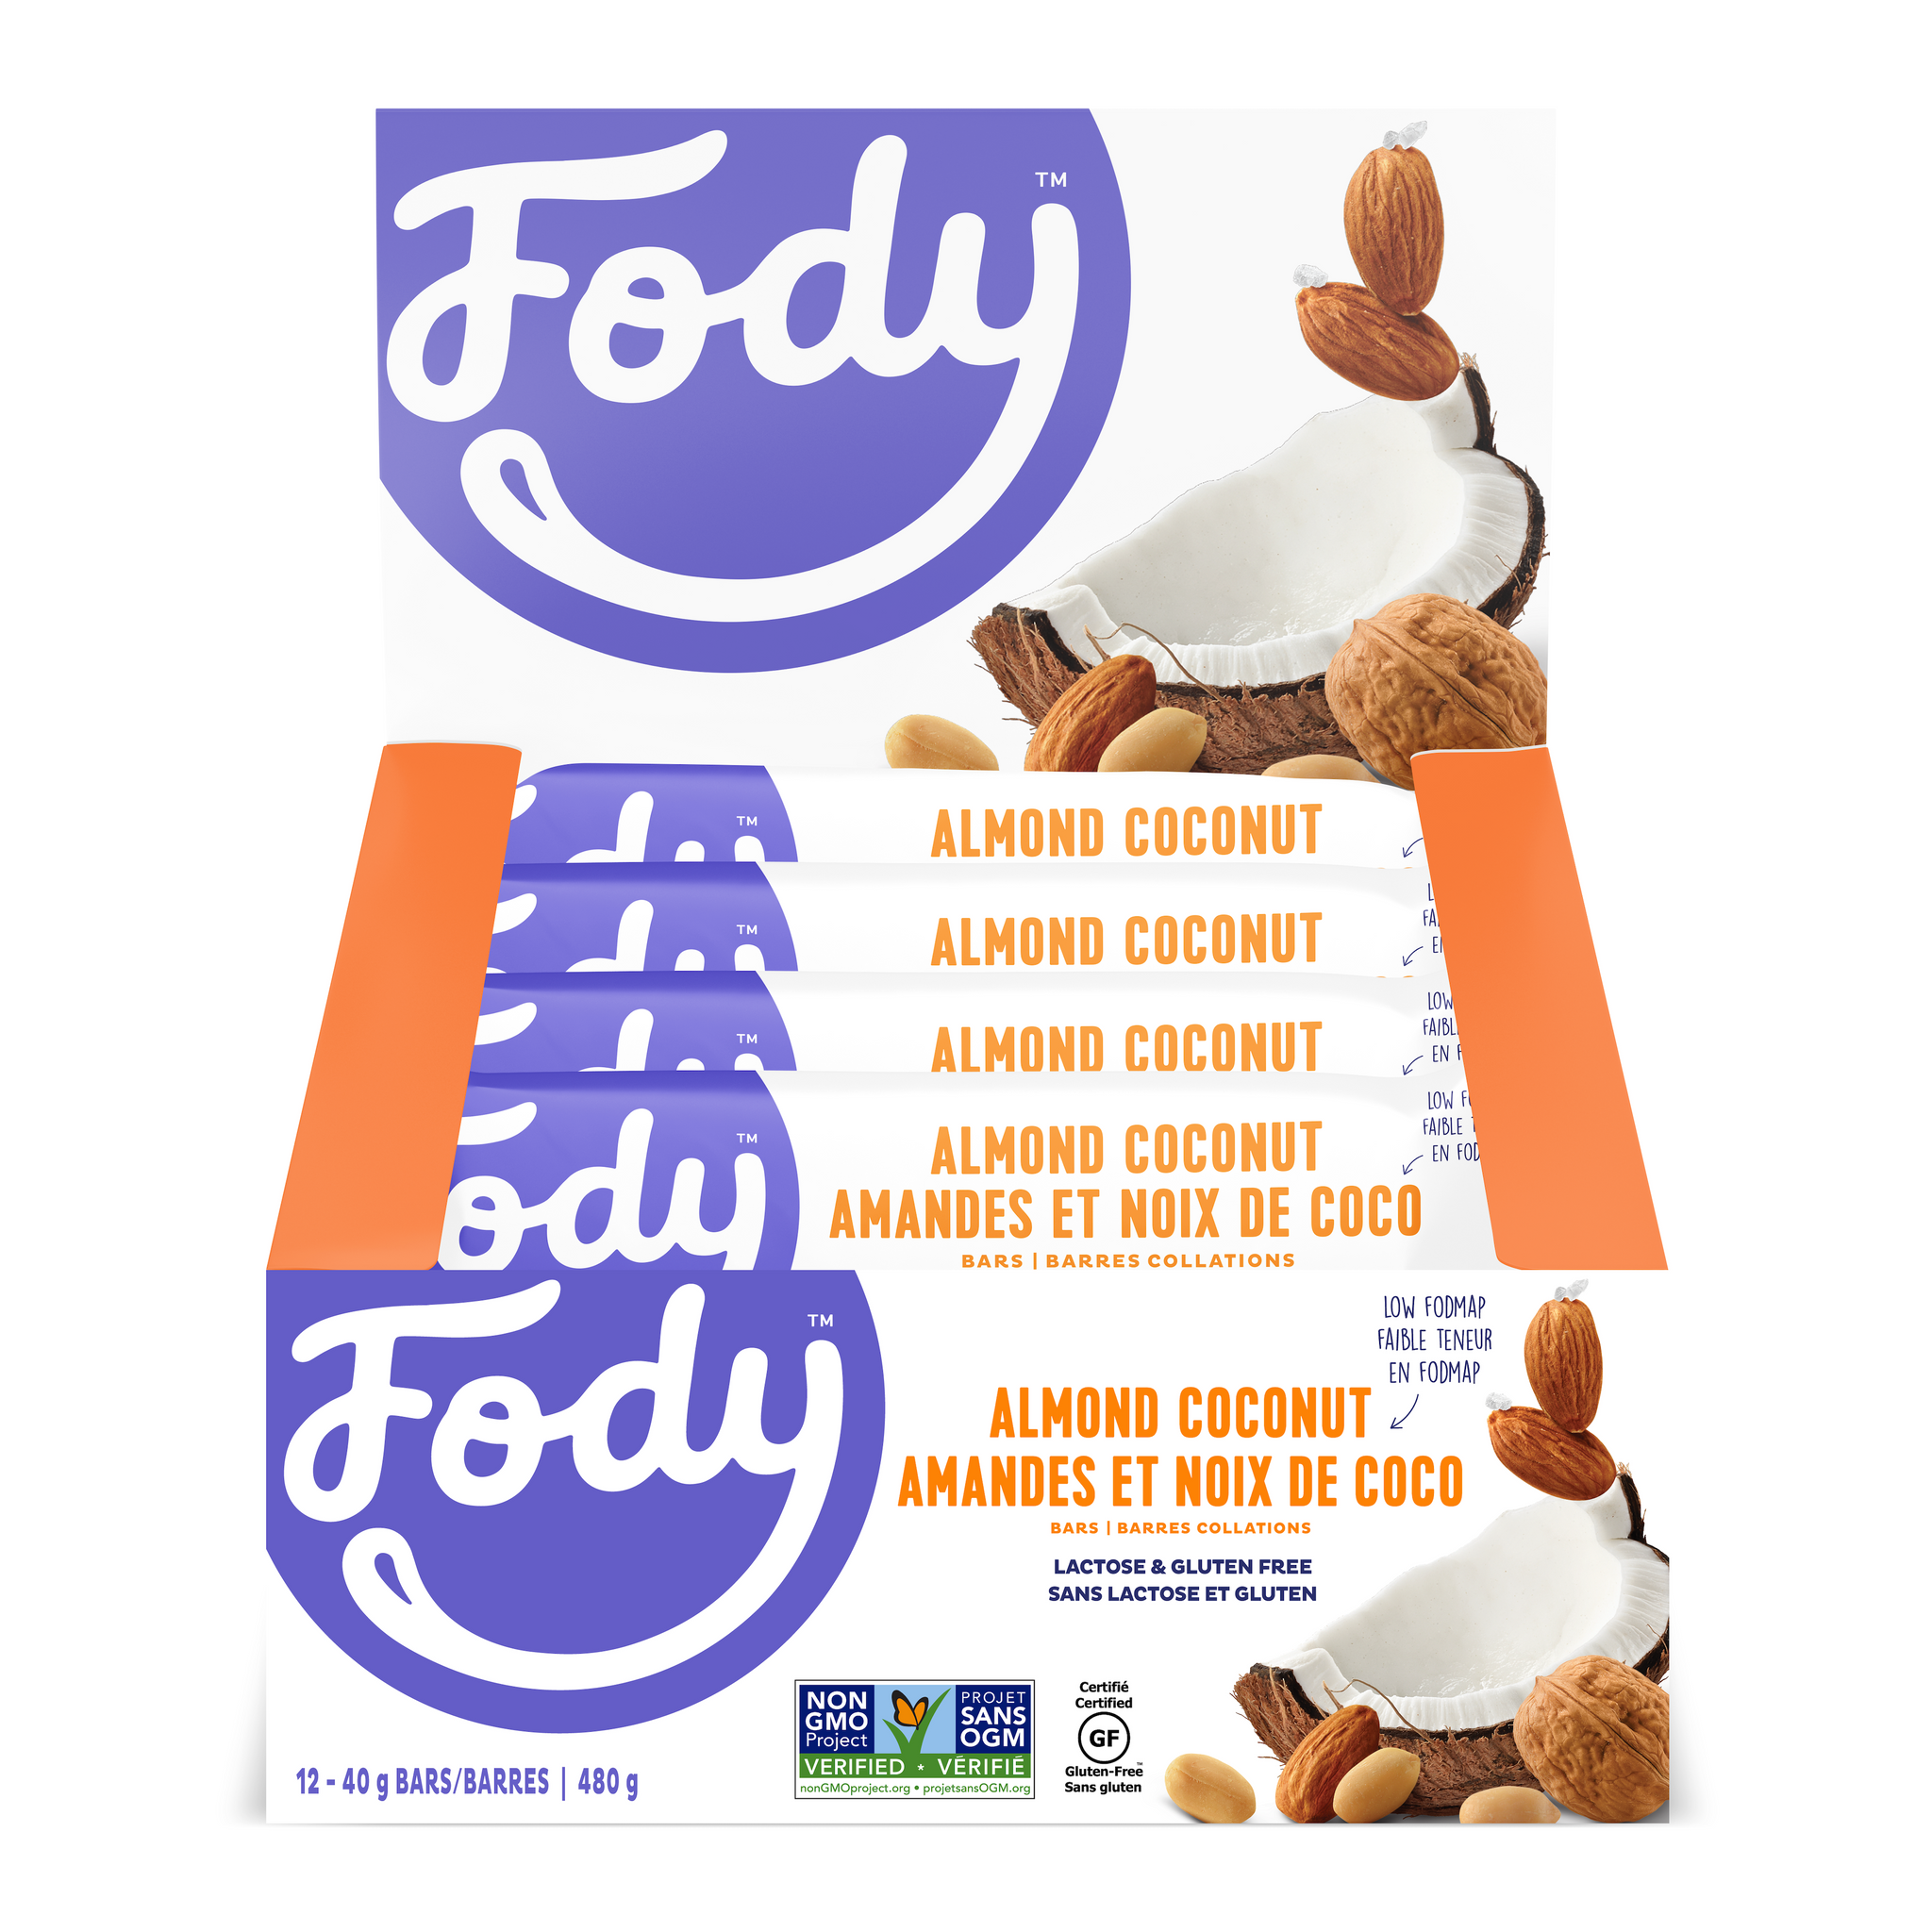 Low FODMAP <br> <b><big>Almond<br>Coconut Bars </big></b><br>(Box of 12) <br><small>Lactose & Gluten Free</small>